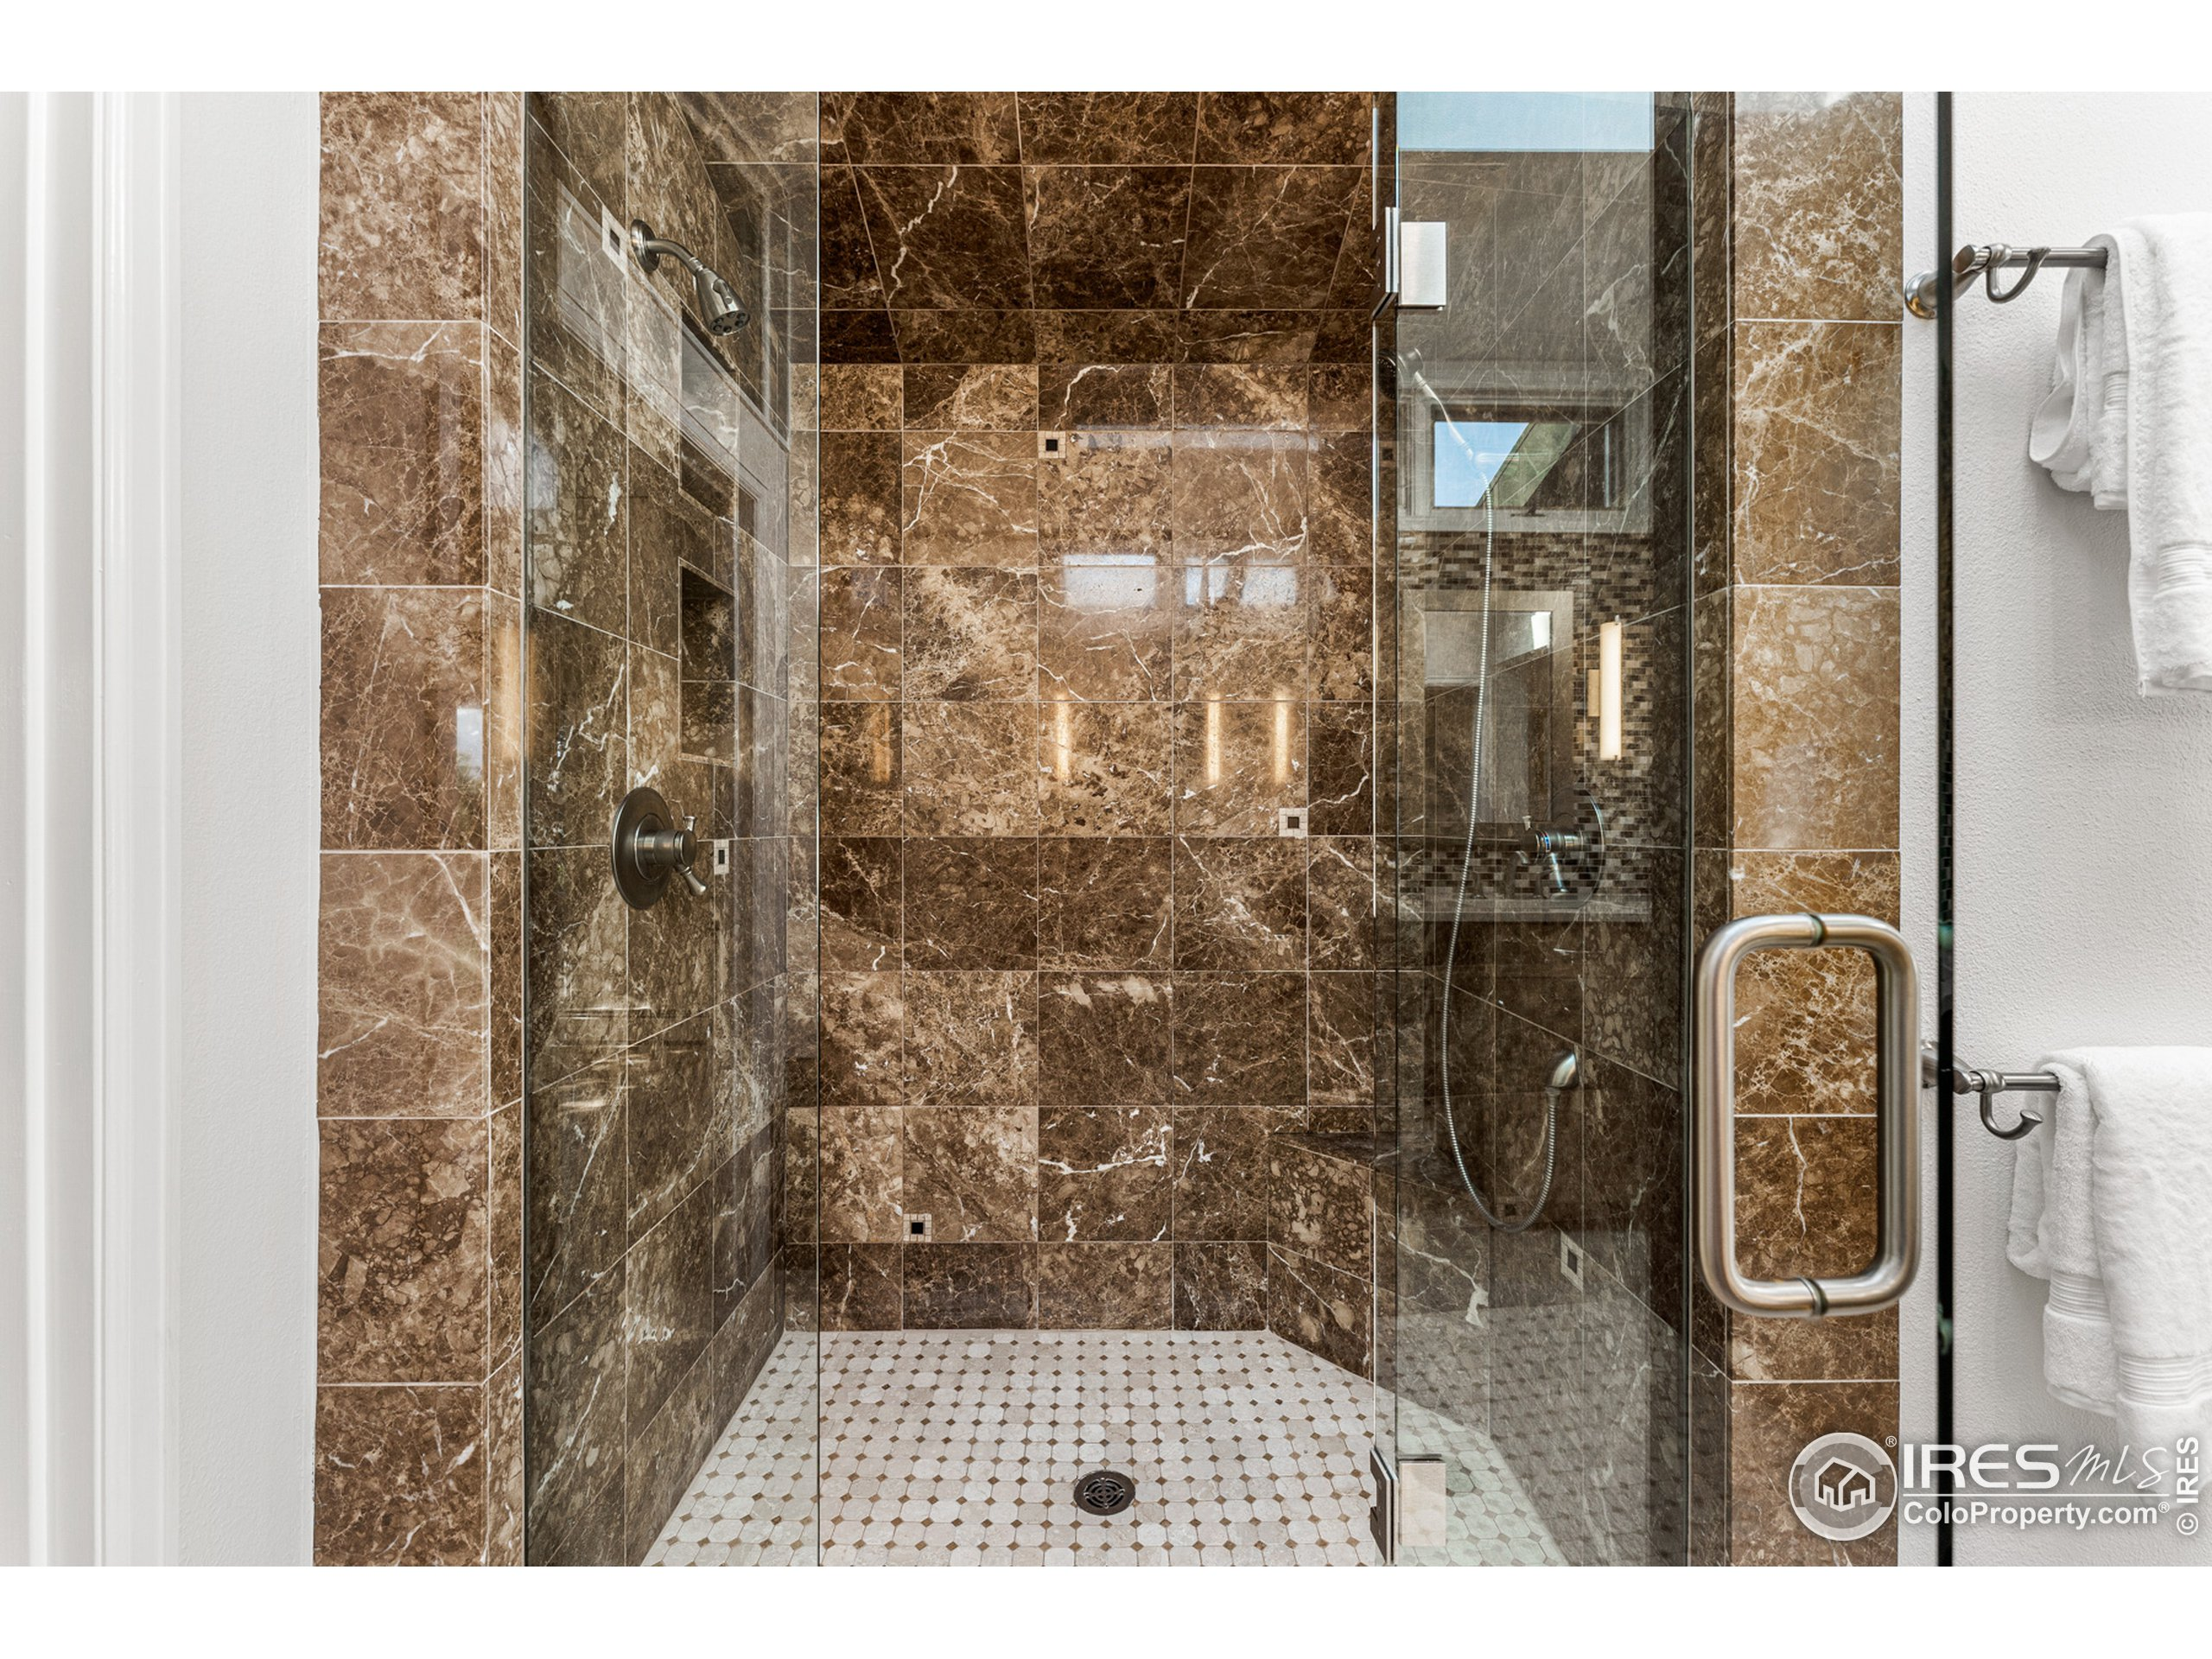 Primary Suite shower with dual heads